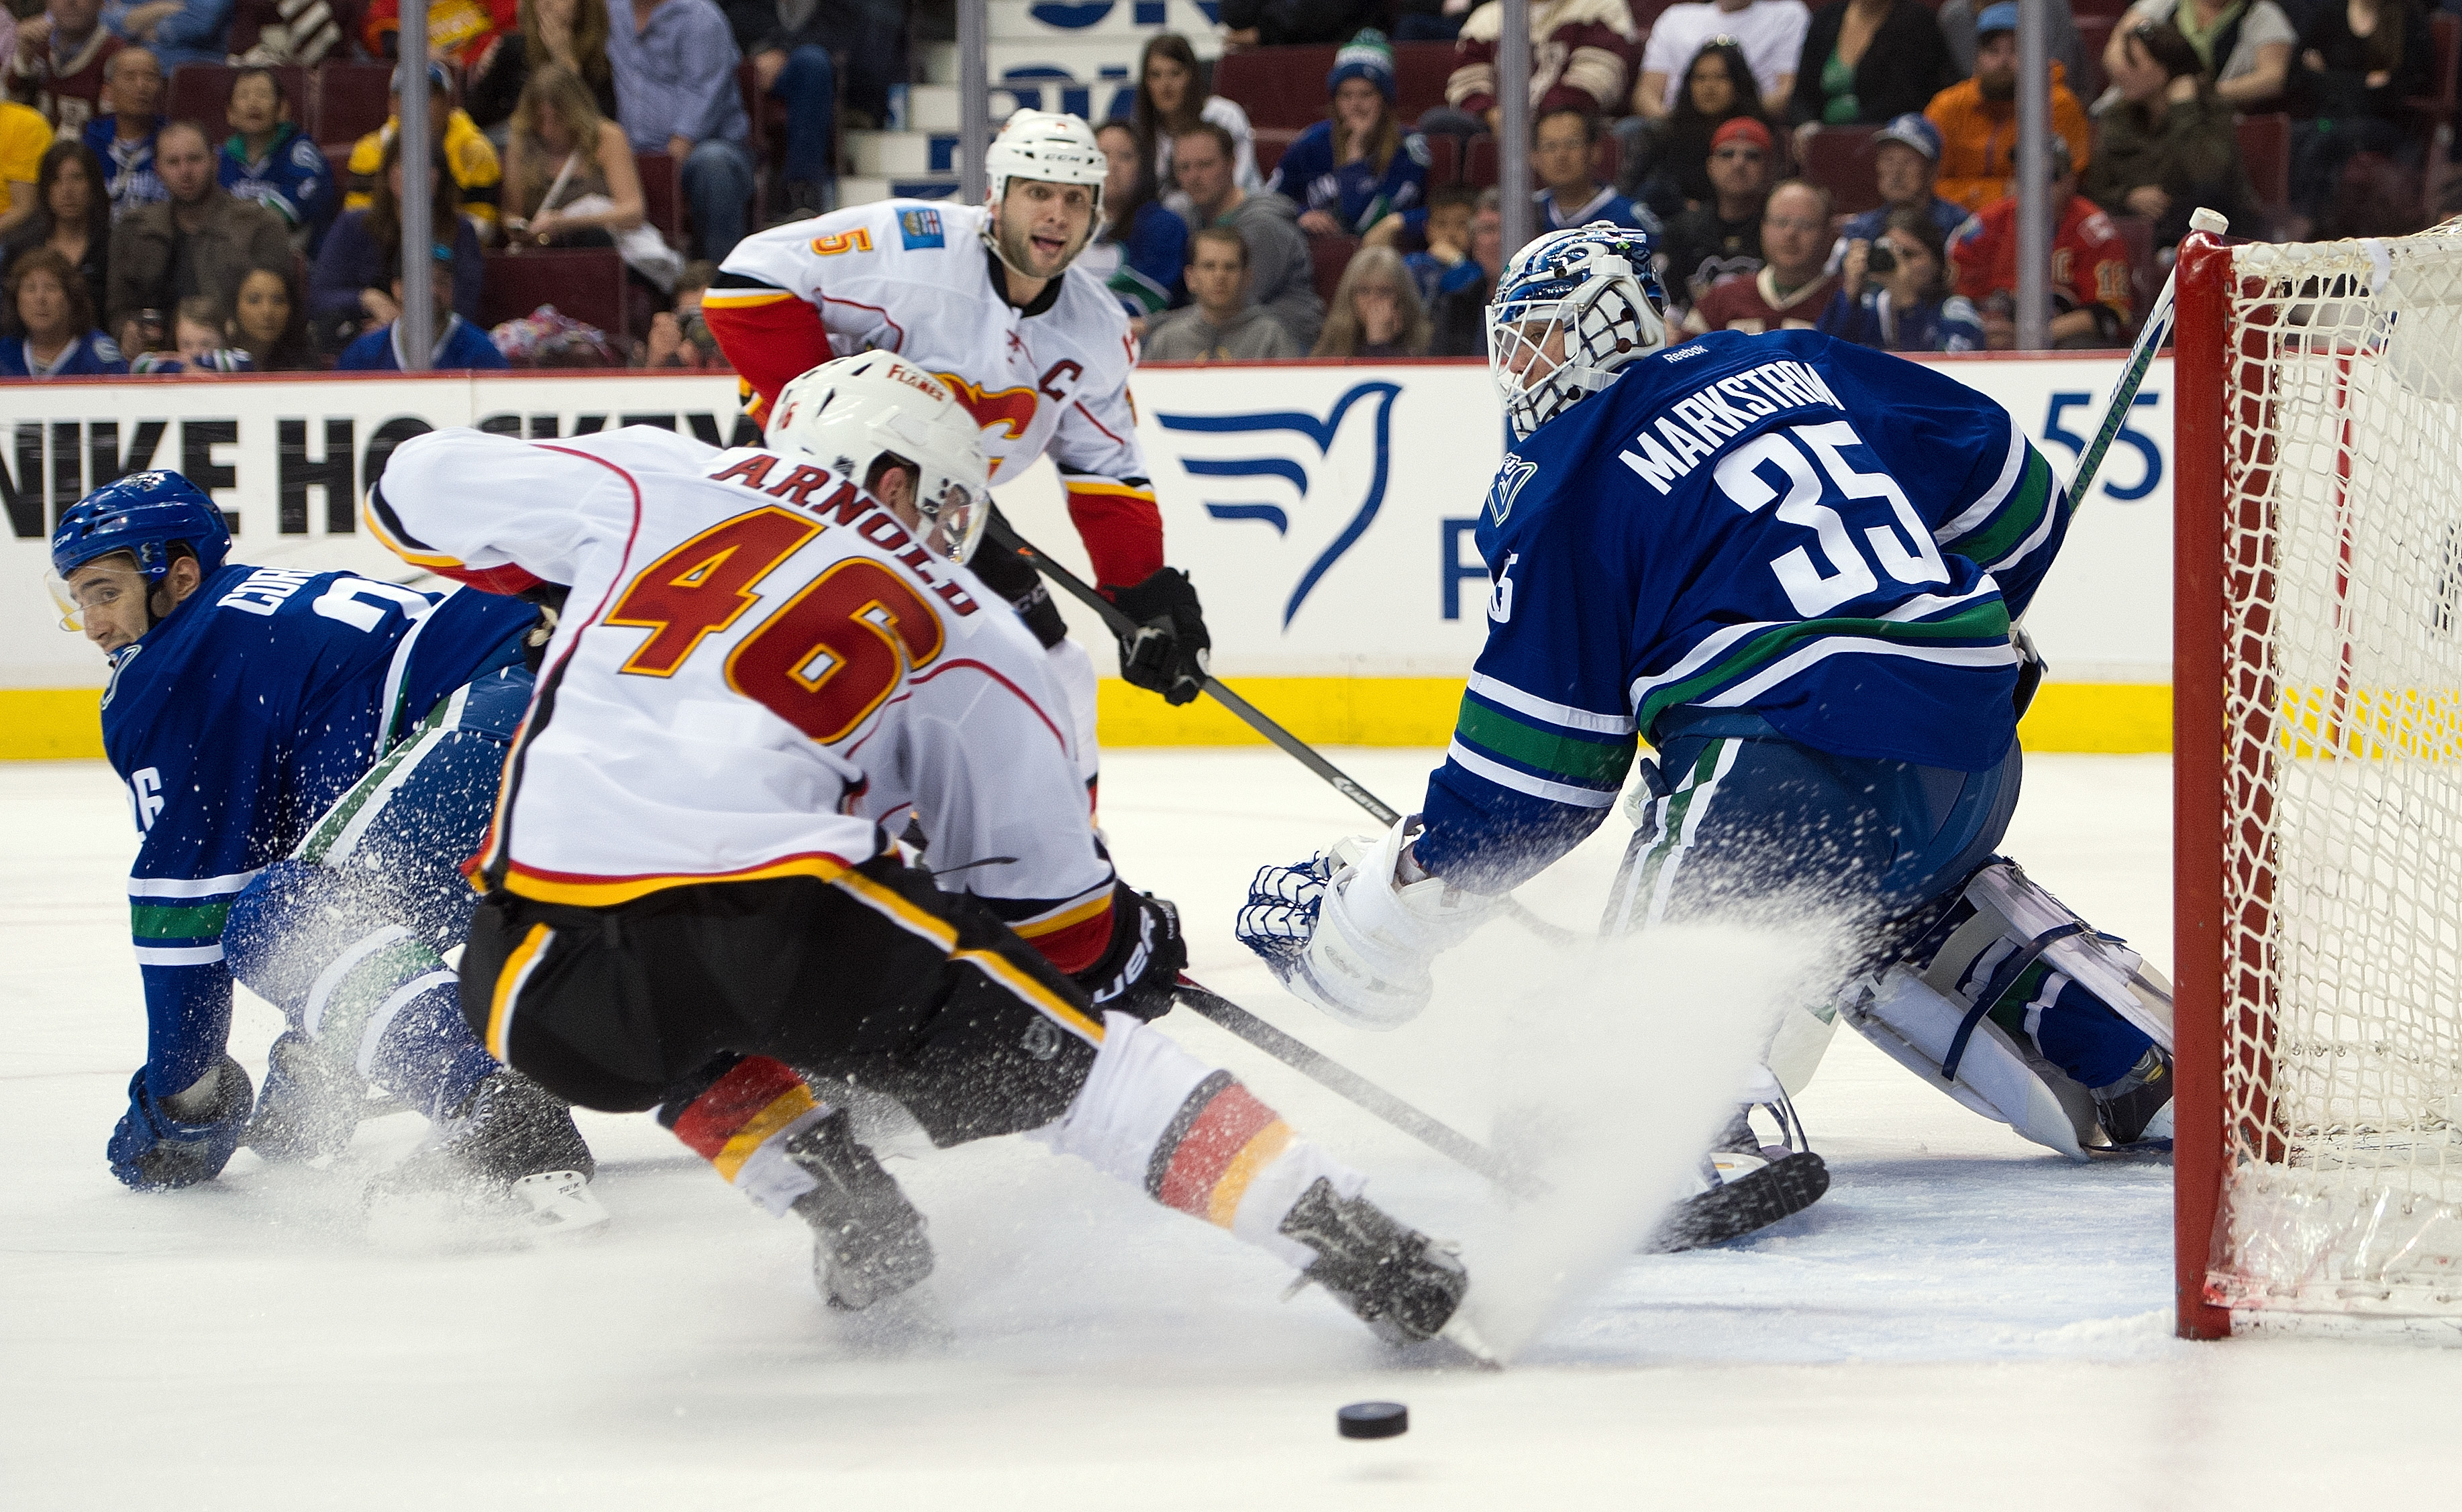 Bill Arnold and the Heat created chances but came up scoreless against the Ontario Reign Saturday night.